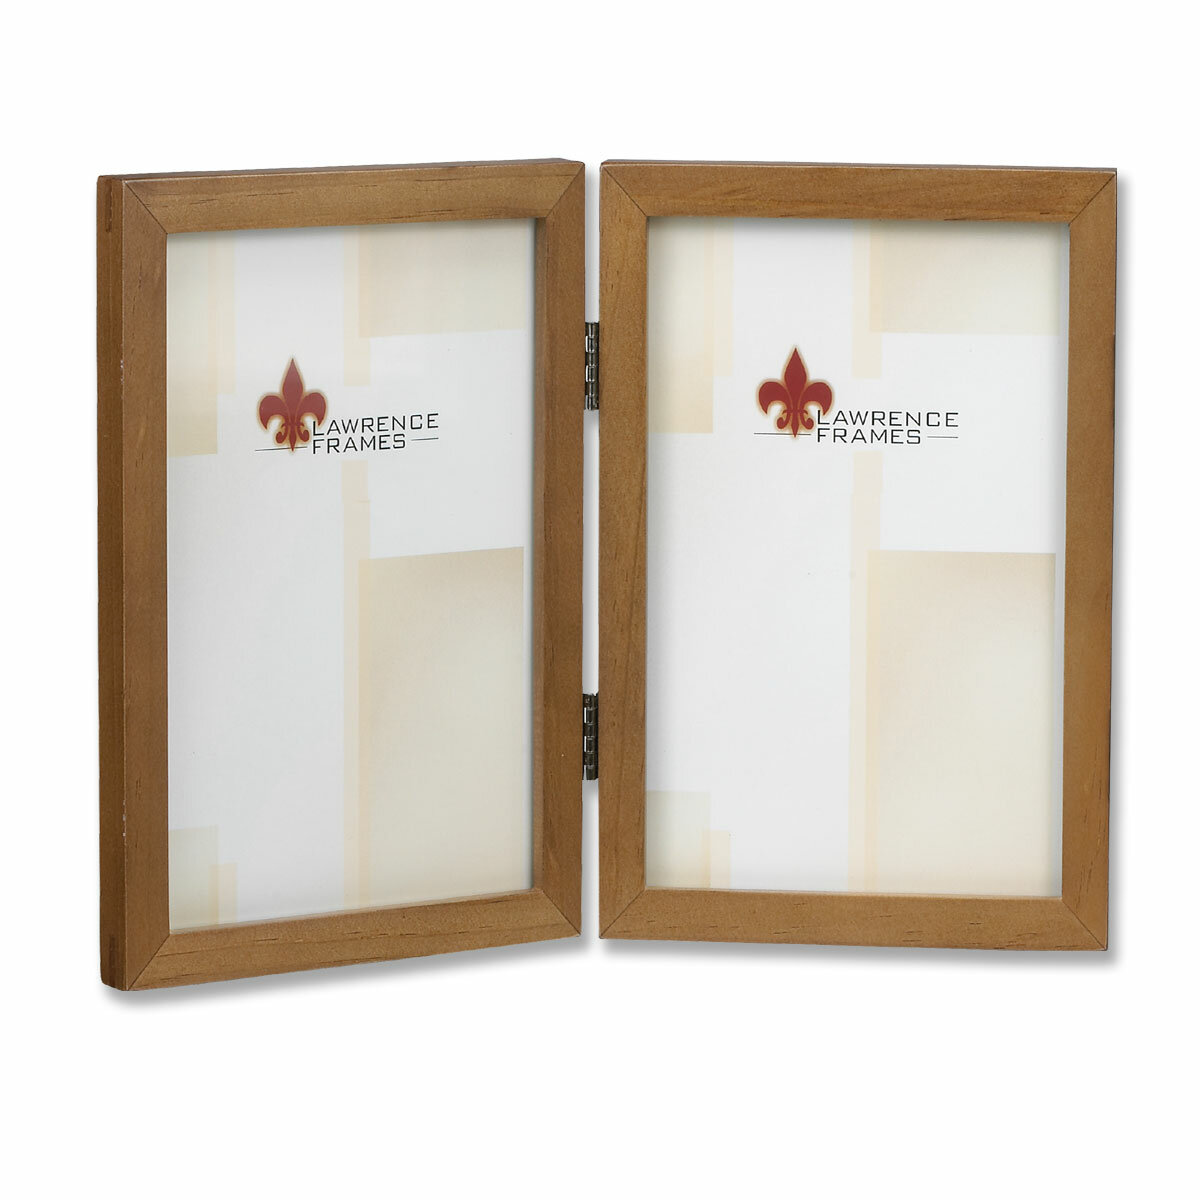 Lawrence Frames Hinged Double Picture Frame & Reviews | Wayfair